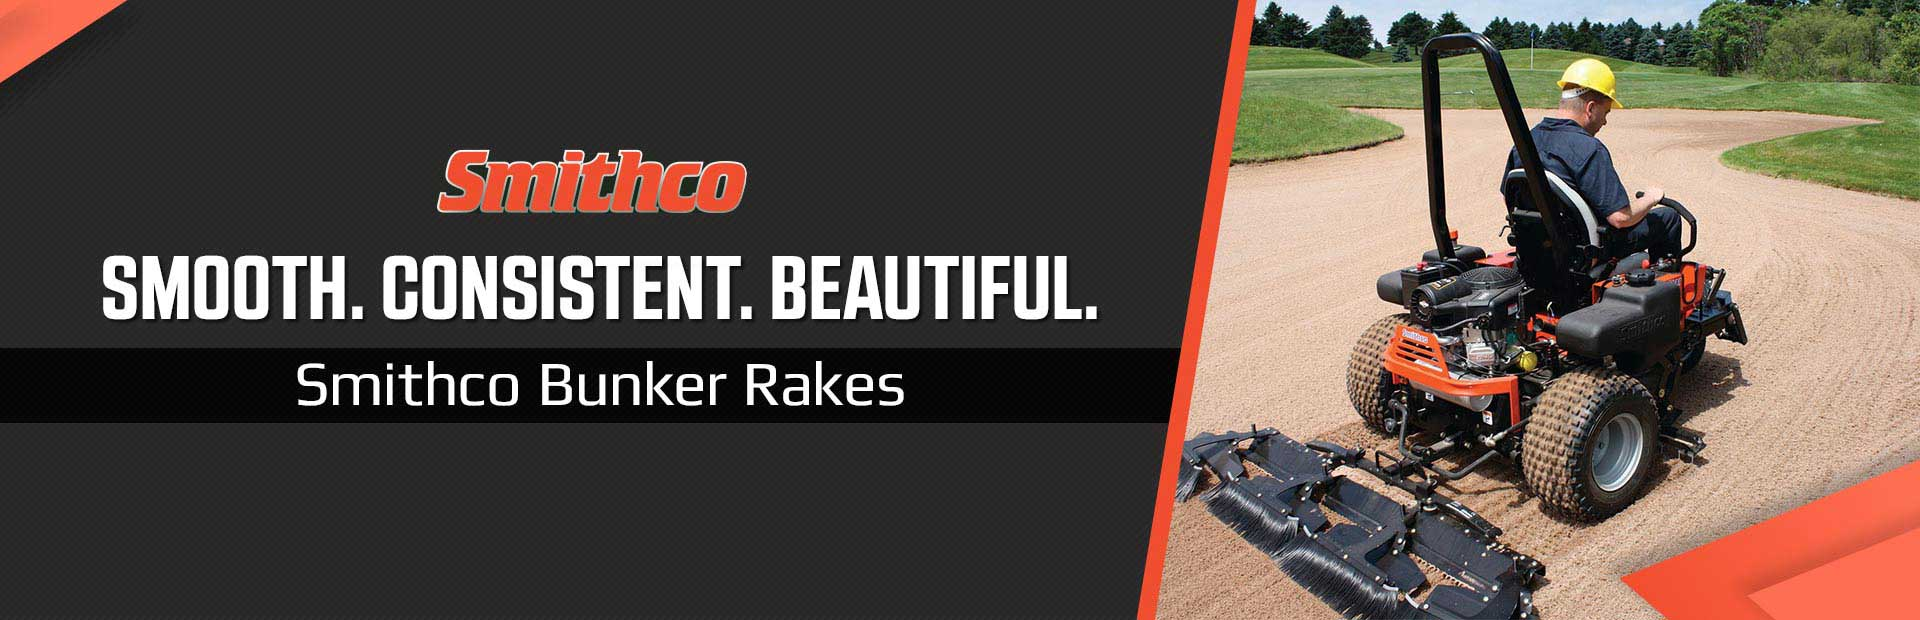 Smithco Bunker Rakes: Smooth. Consistent. Beautiful.